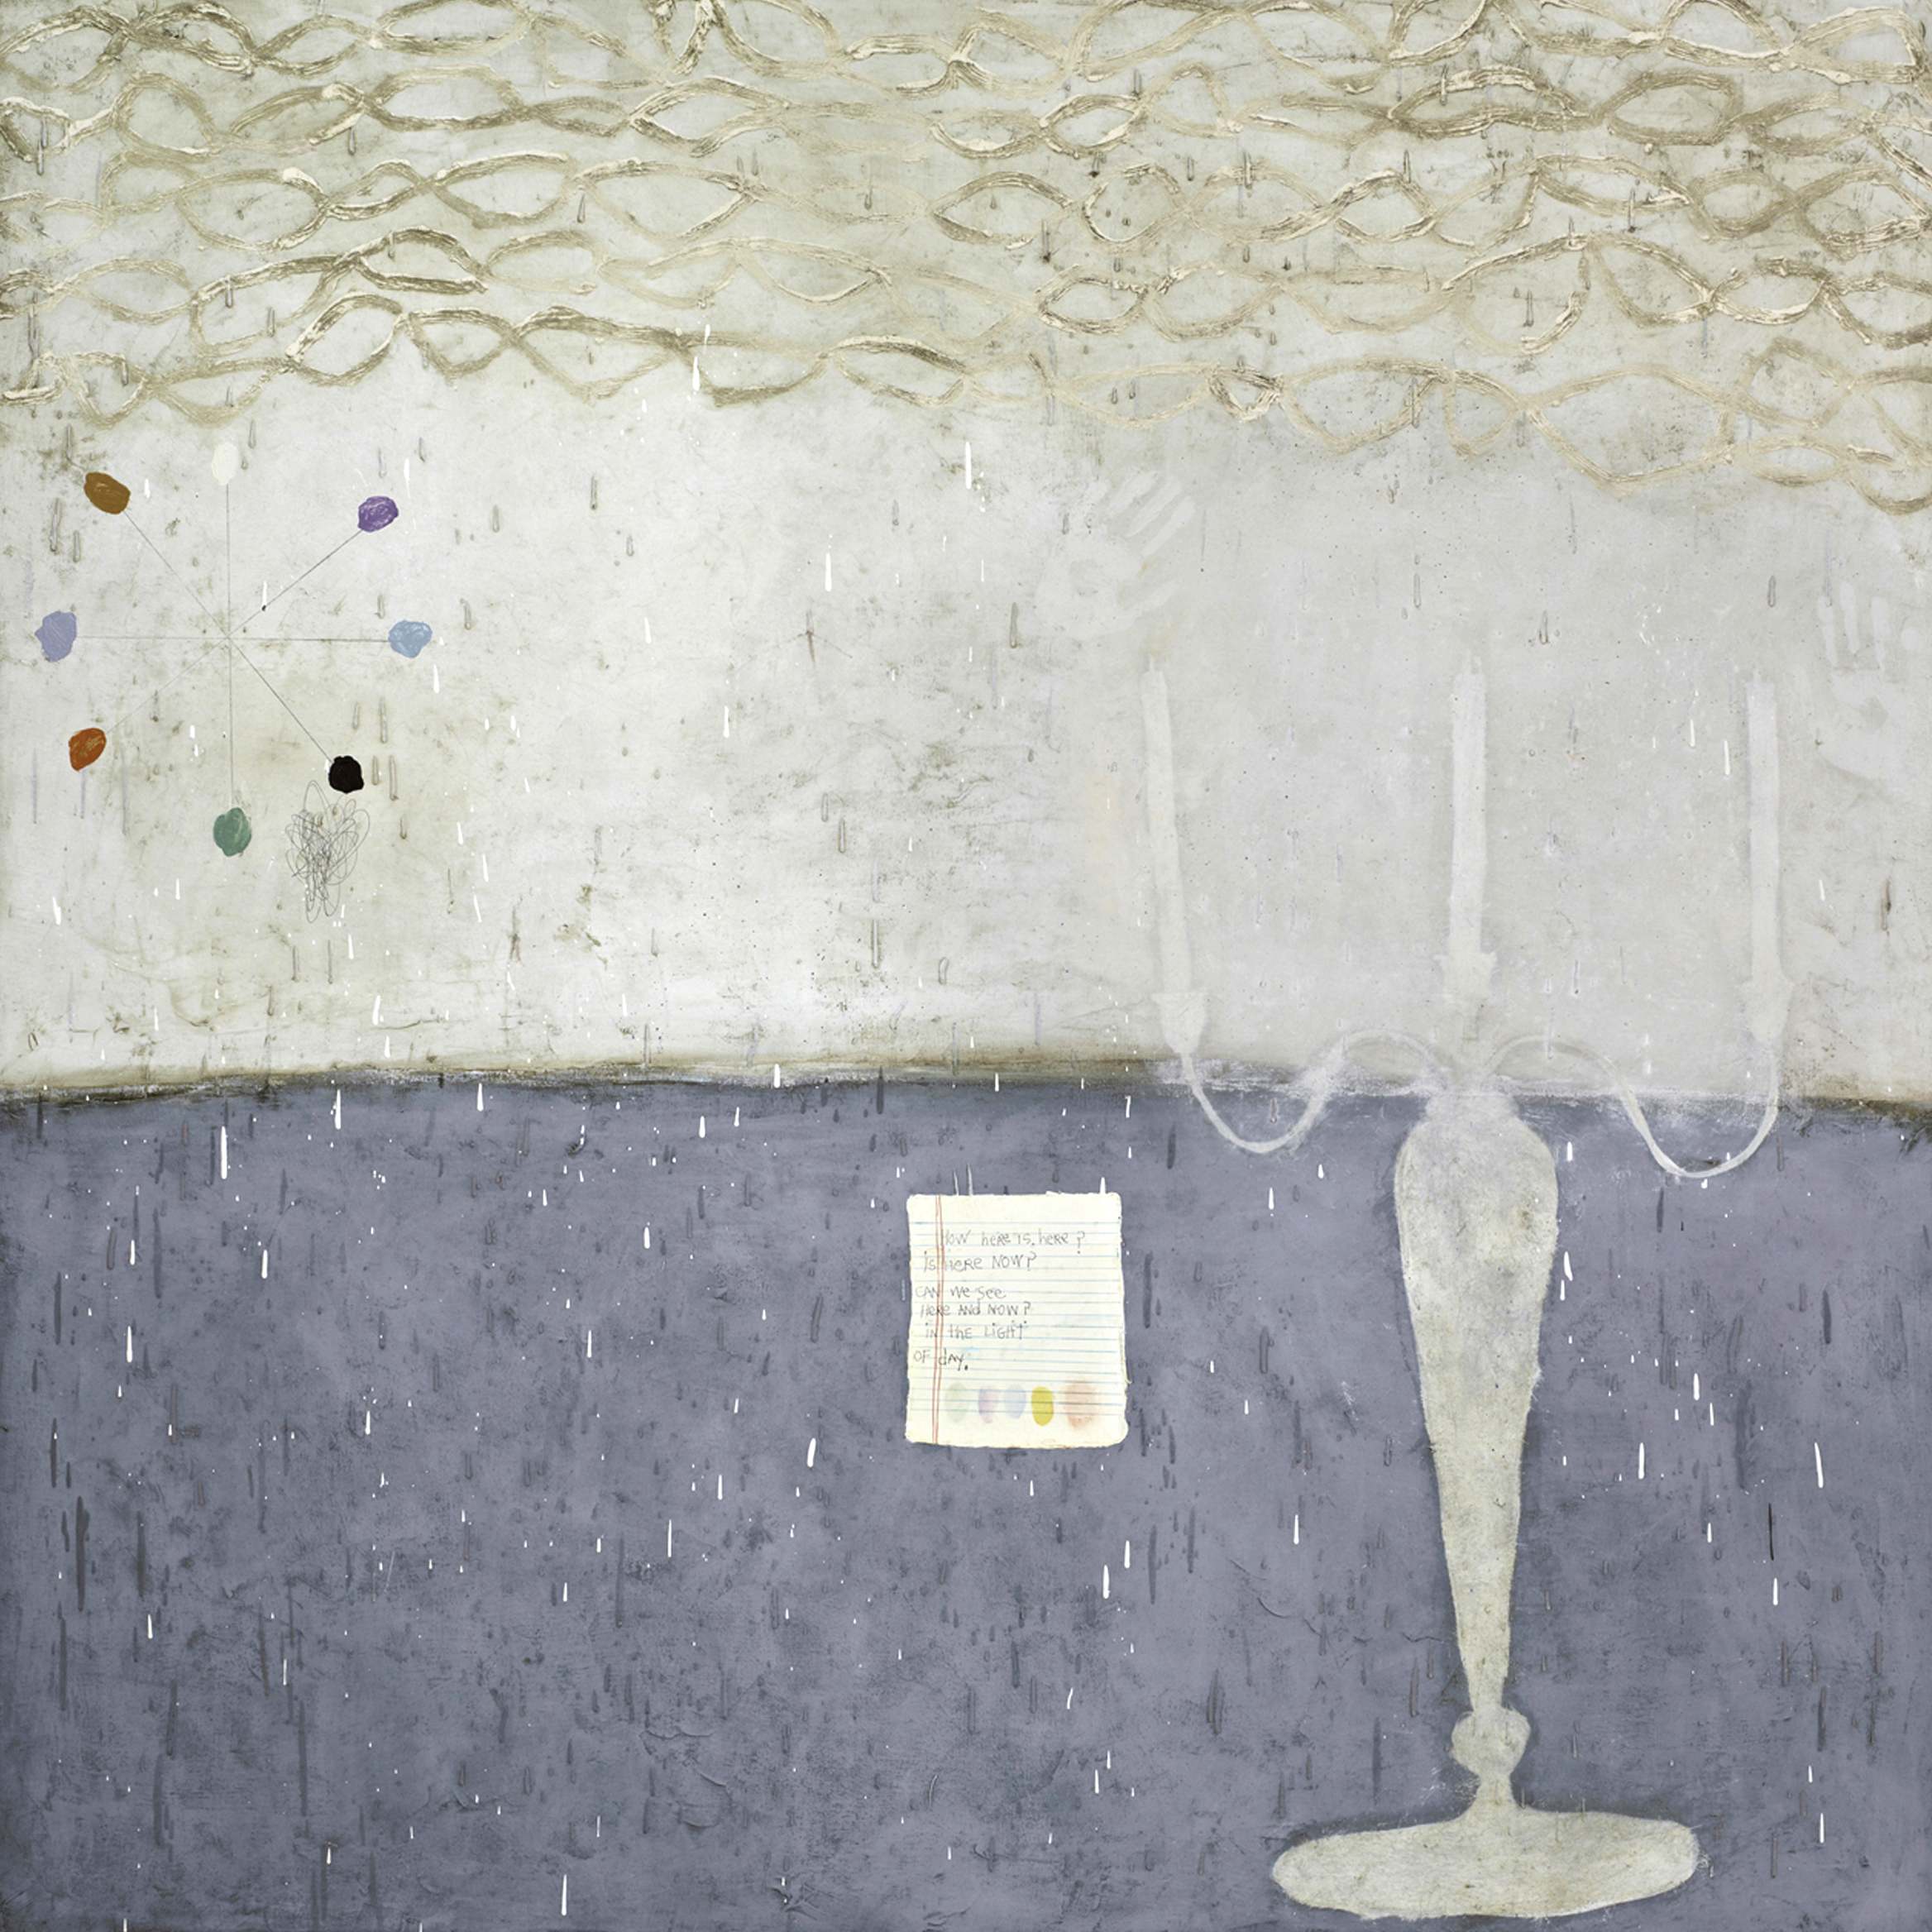 Squeak Carnwath   Here is Here , 2011 oil and alkyd on canvas over panel 70 x 70 inches 177.8 x 177.8 cm